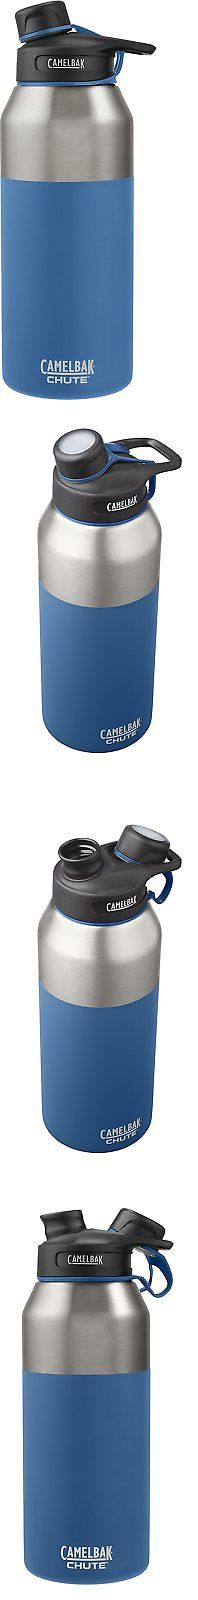 Drink Containers and Thermoses 177006: Camelbak Chute Vacuum Insulated Stainless Water Bottle, 40 Oz, Pacific -> BUY IT NOW ONLY: $34.23 on eBay!